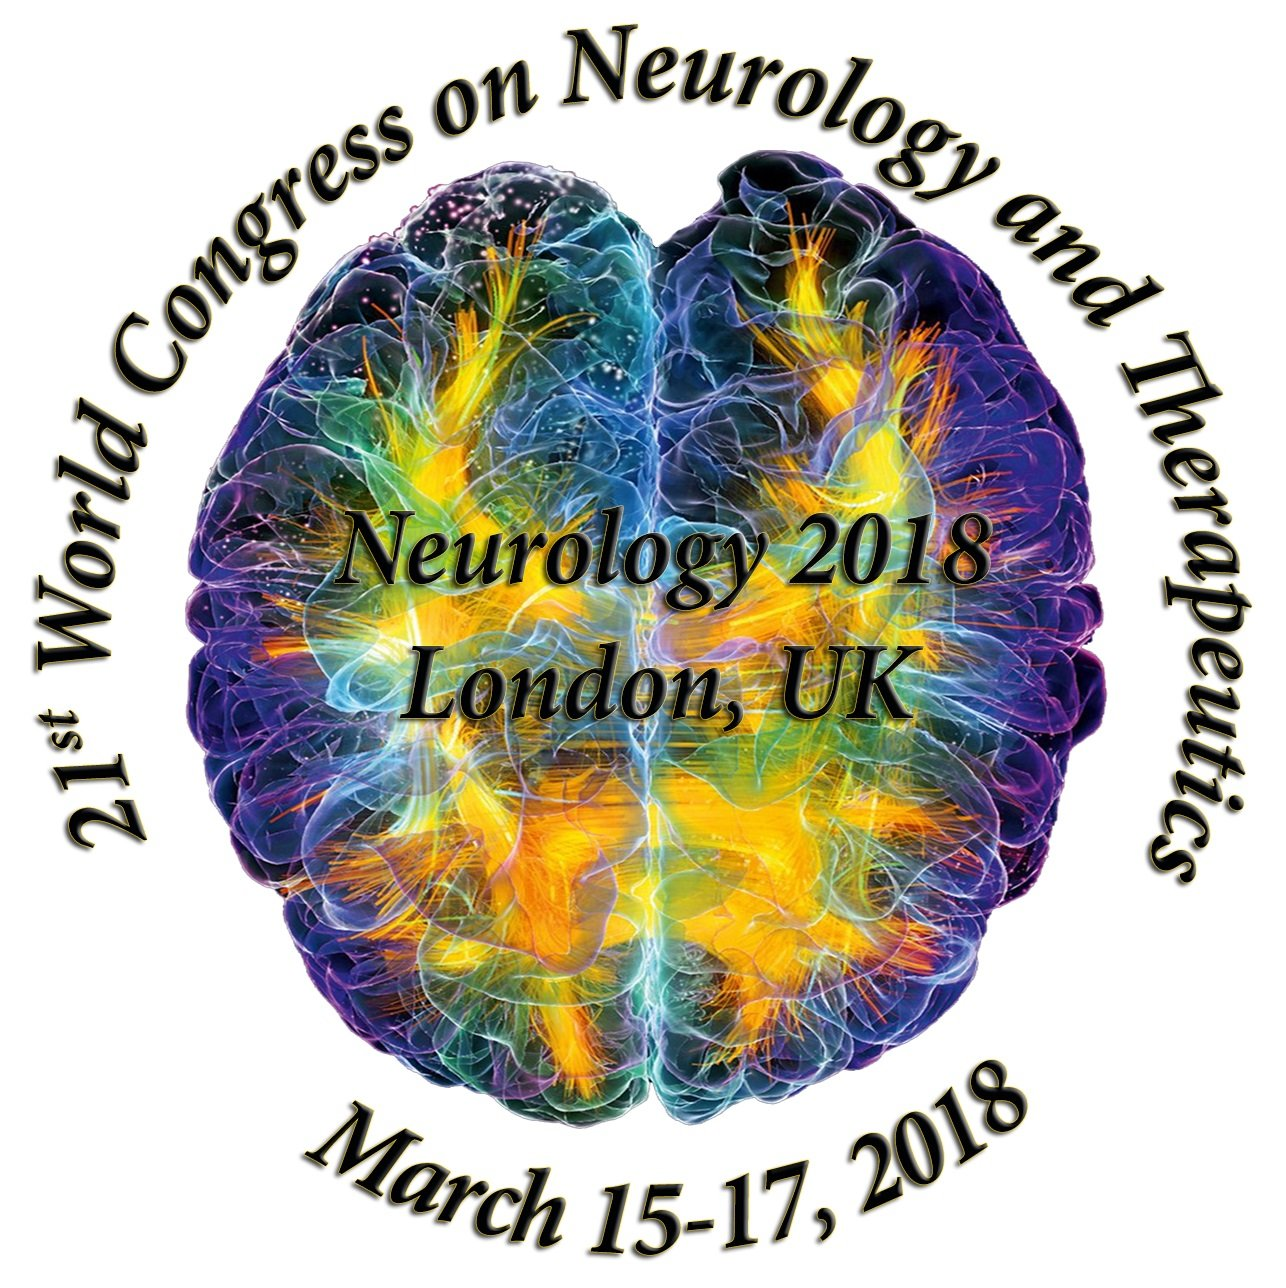 Ronnie Rivera; Neurology Conference 2018, 2017, Original Digital Art, 19 x 19 inches. Artwork description: 241 The 21st World Congress on Neurology and Therapeutics is to be held during March 15- 17, 2018 in London, UK. Neurology Conference will be organized around the theme aEURoeExploring the Recent Innovations and Novel Therapies in Neurology and NeuroscienceaEUR. Neurology 2018 invites participants, moderators, and exhibitors from ...